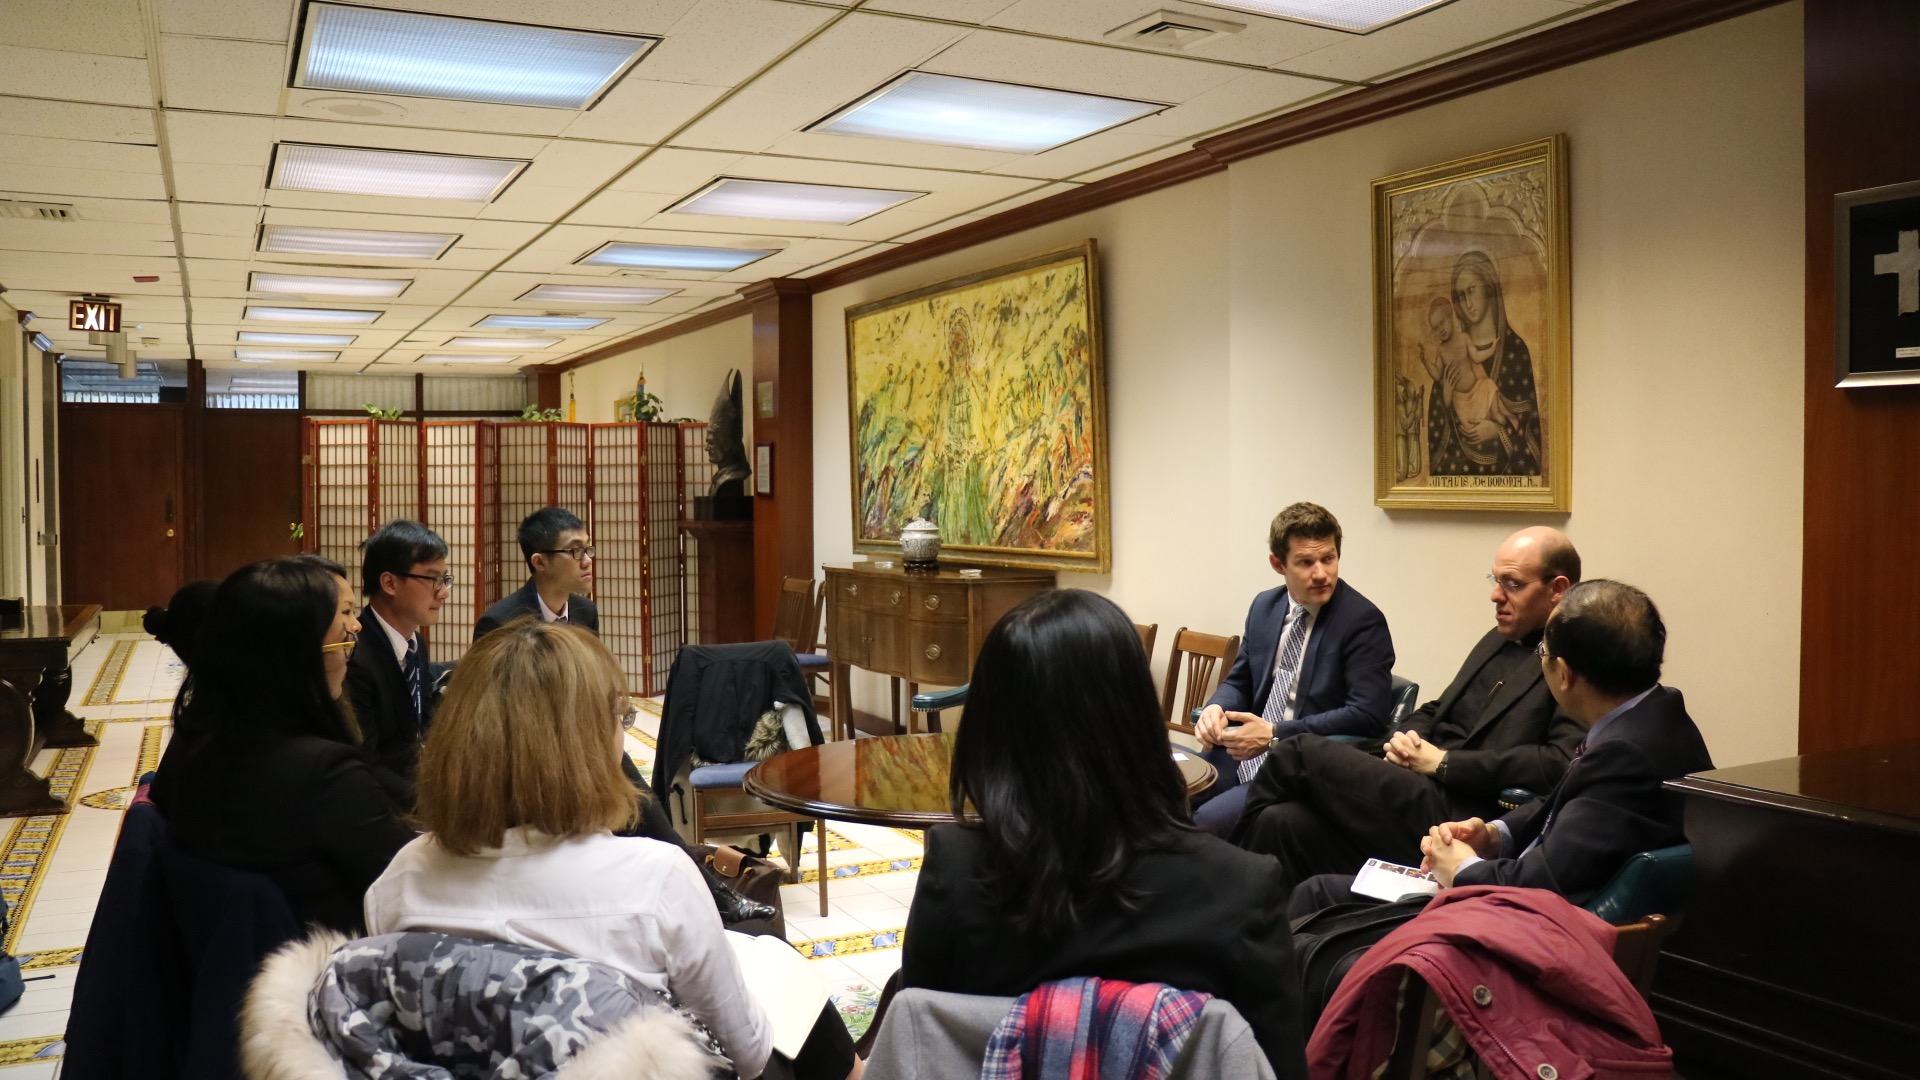 UM's delegation meets with senior diplomats in the Permanent Observer Mission of the Holy See to the UN